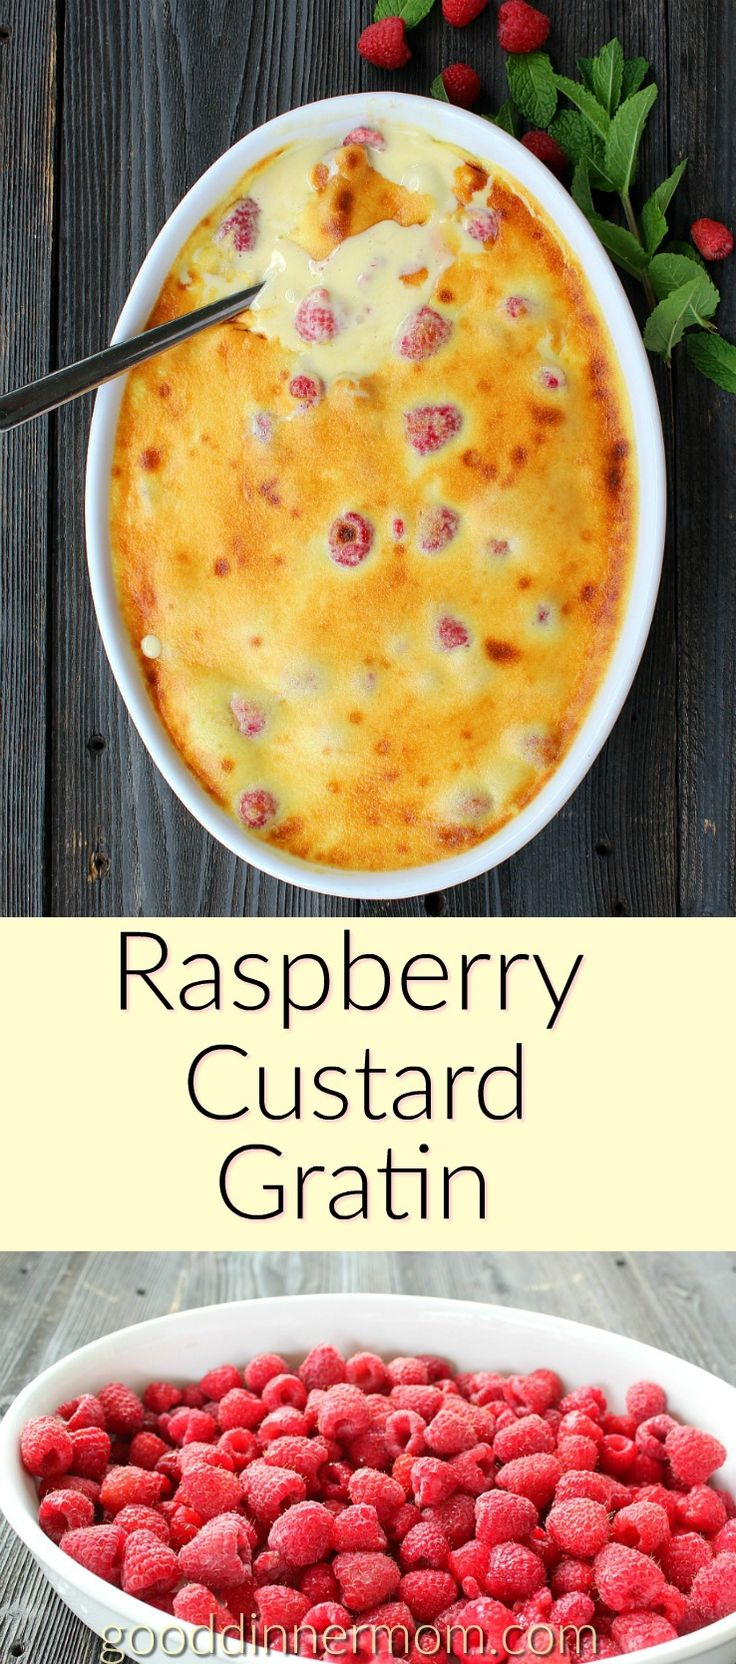 Raspberry Custard Gratin is simple to make, with homemade Bavarian custard mixed with whipped cream, spread over the raspberries and toasted to perfection.